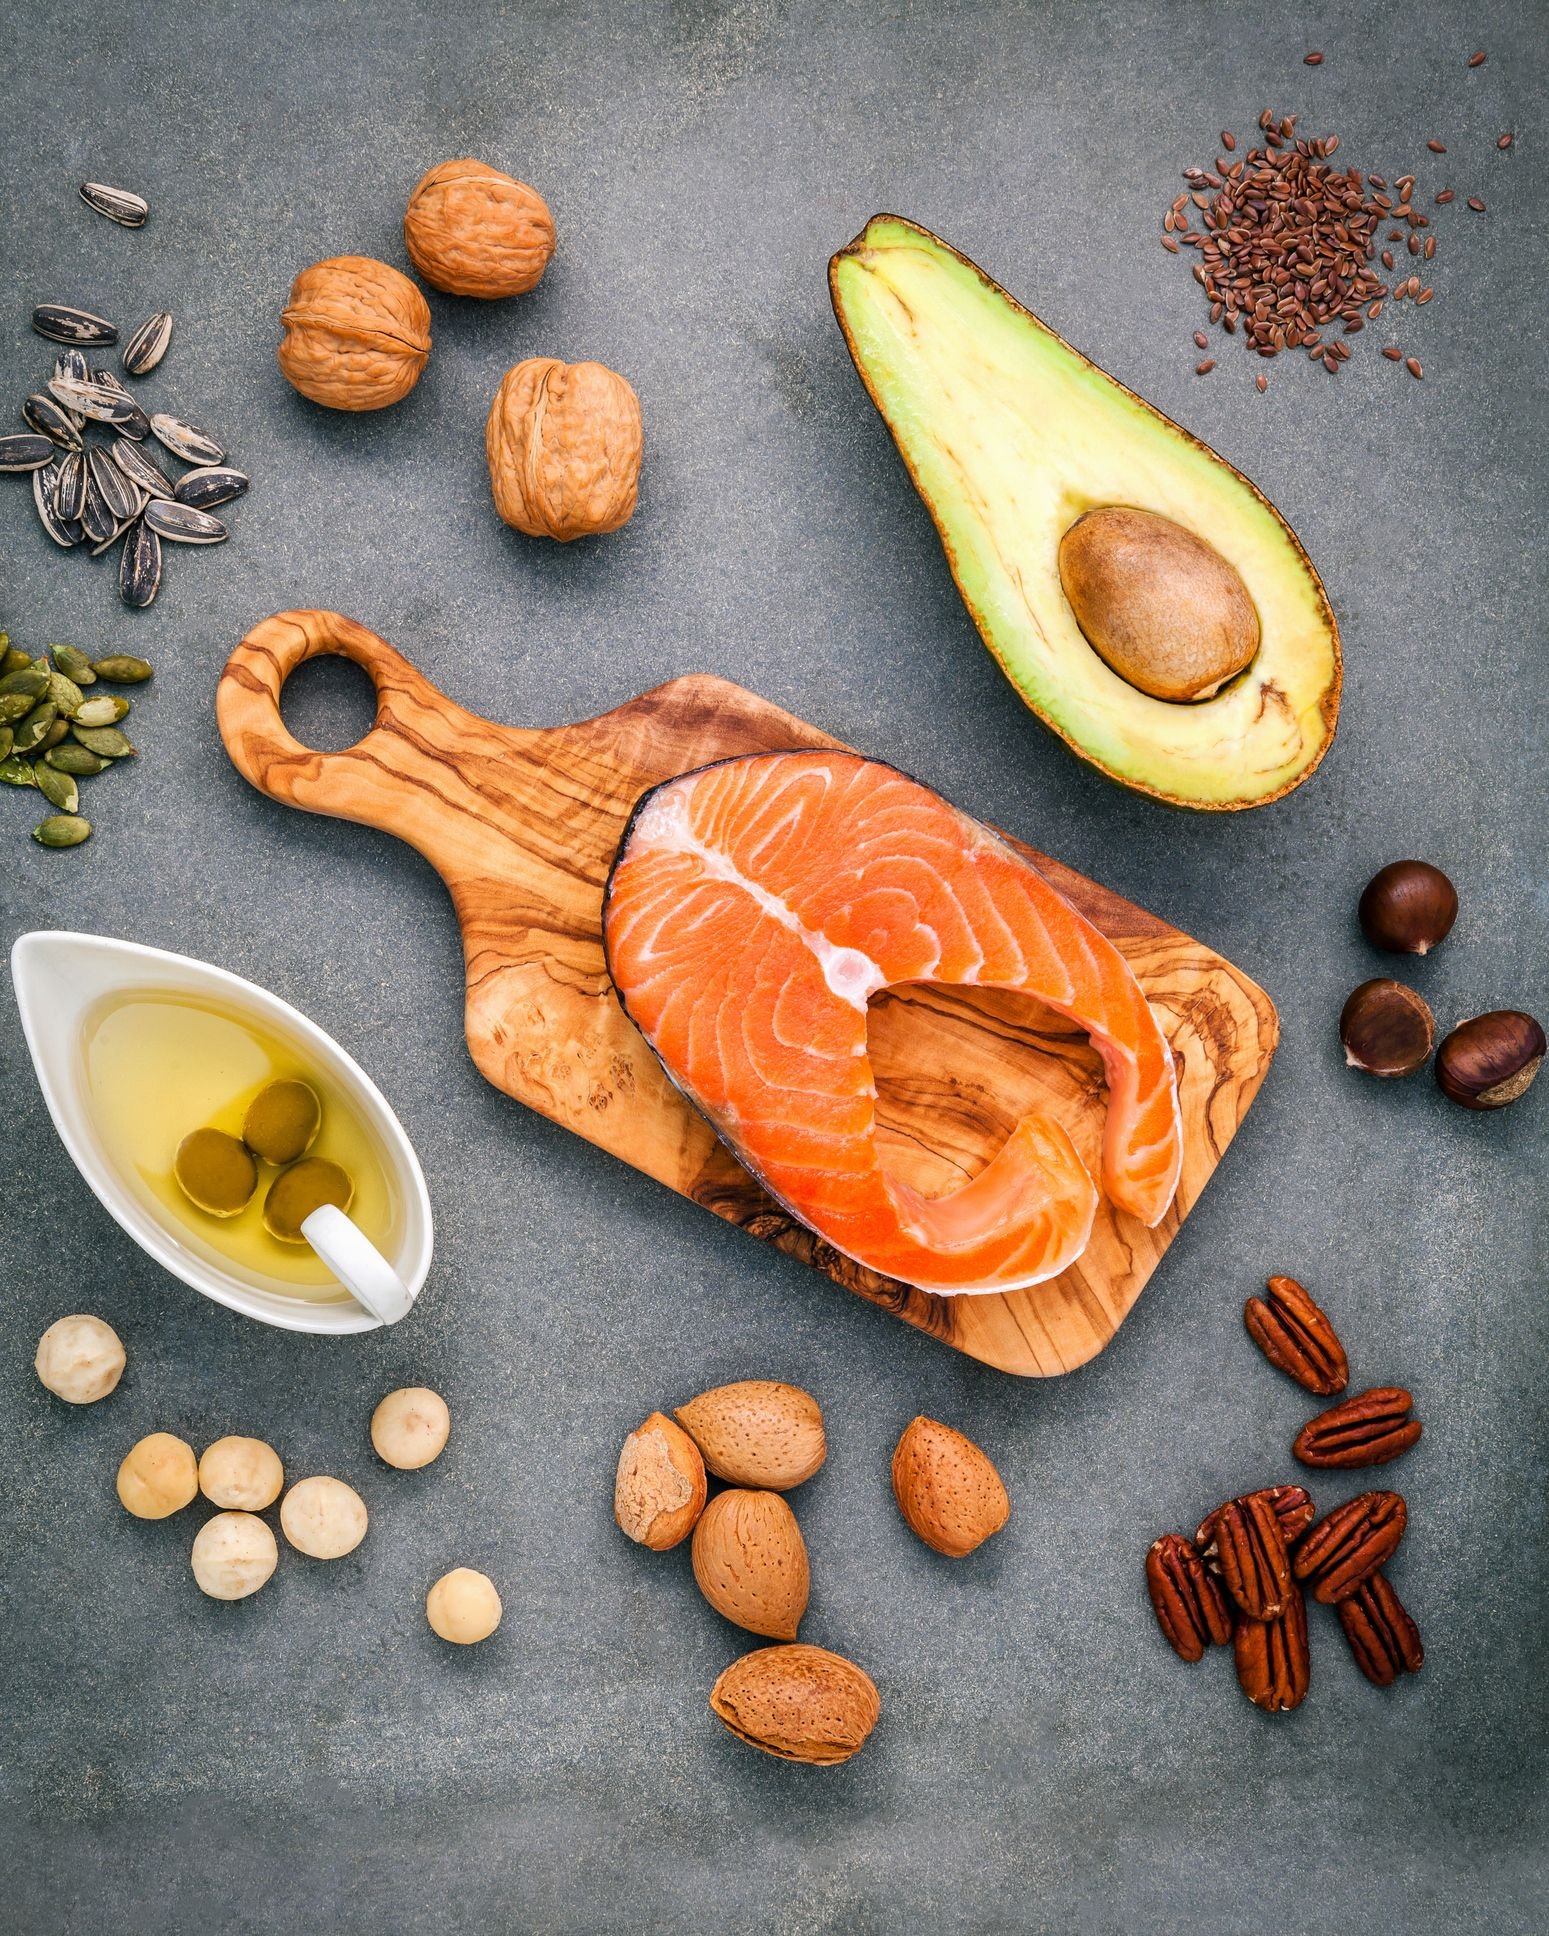 The Most Popular Diet The Year You Were Born - Fad Trend